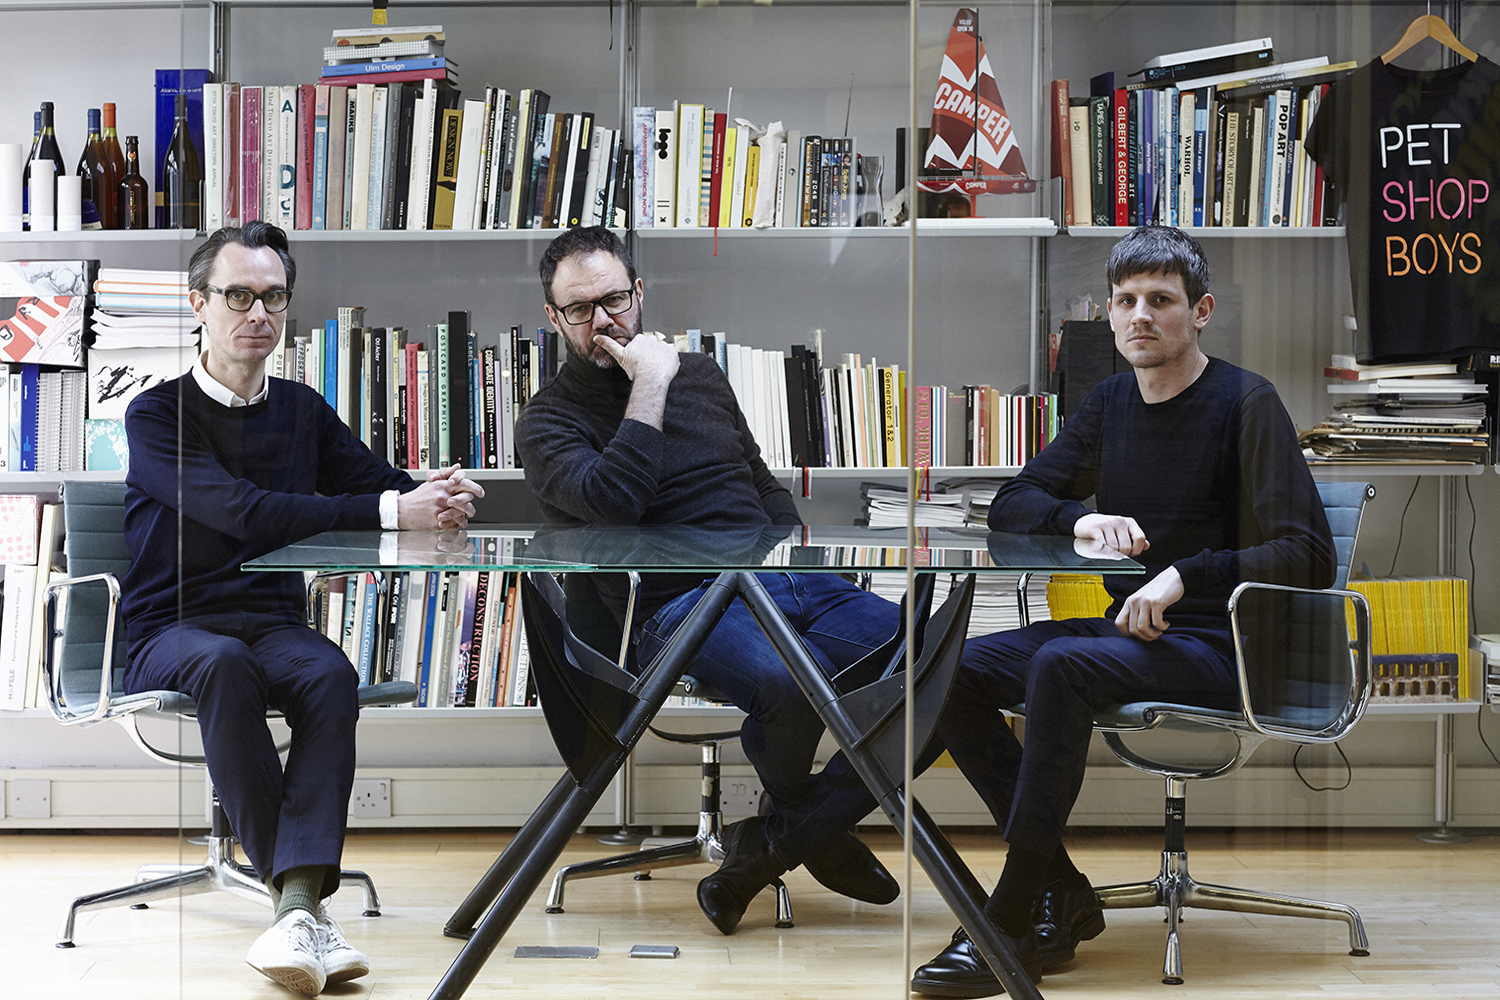 From left: Gary Stillwell, Mark Farrow and Fred Ross of Farrow Design in their studio, Bloomsbury, London, March 2016